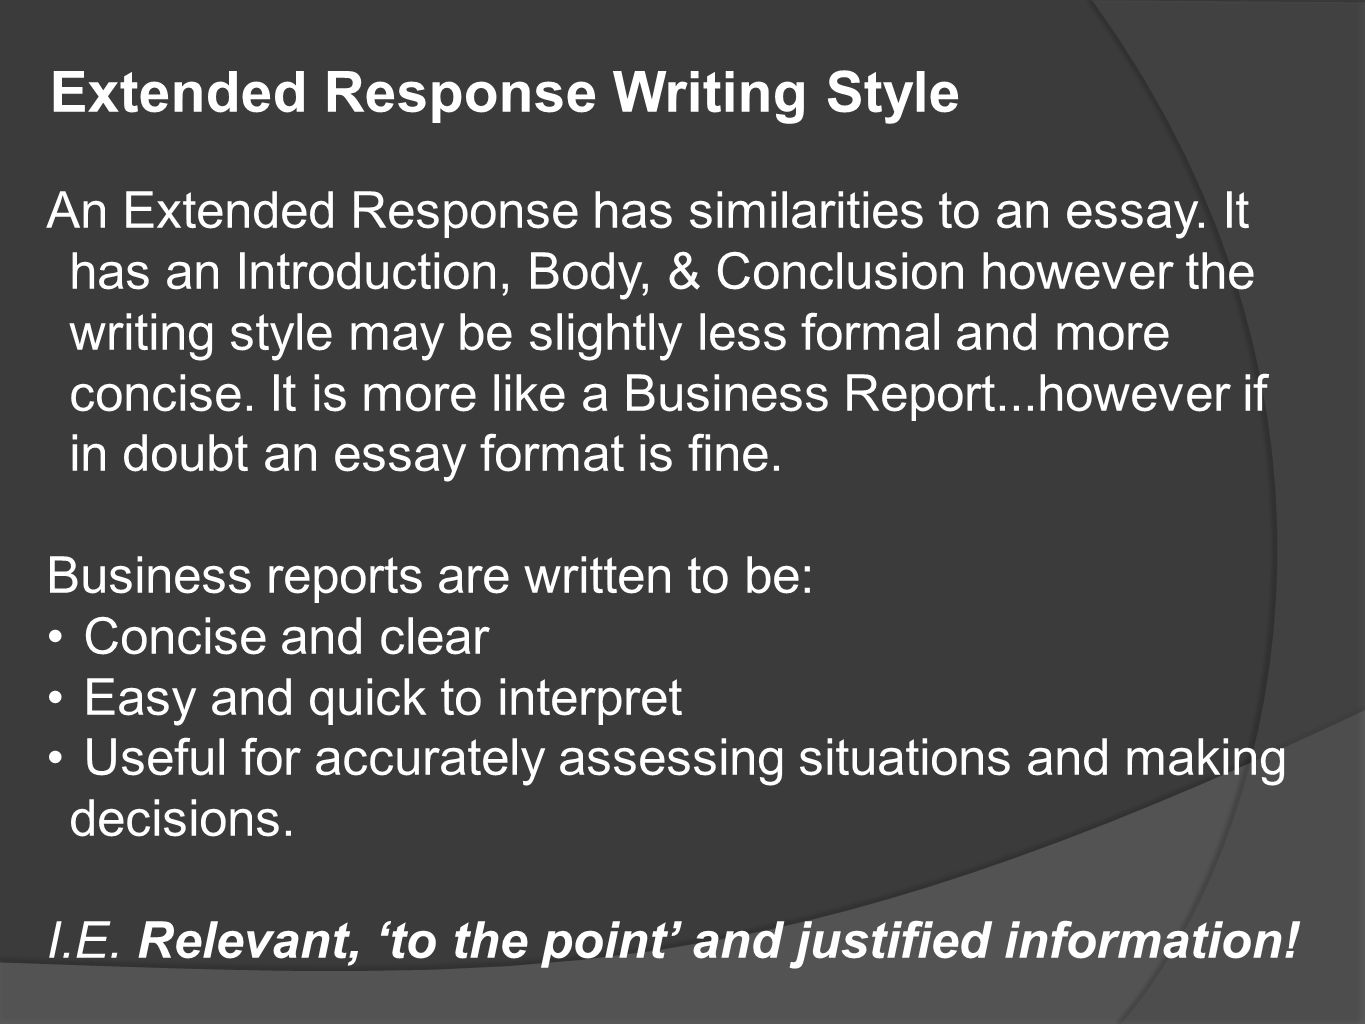 Short preview or overview statements Shorter than traditional essay paragraphs that get right to the point Lists of main points, as in the previous sample reports, followed by expanded descriptions where appropriate Headings to draw attention to major points or new sections Components of business reports (pt1)